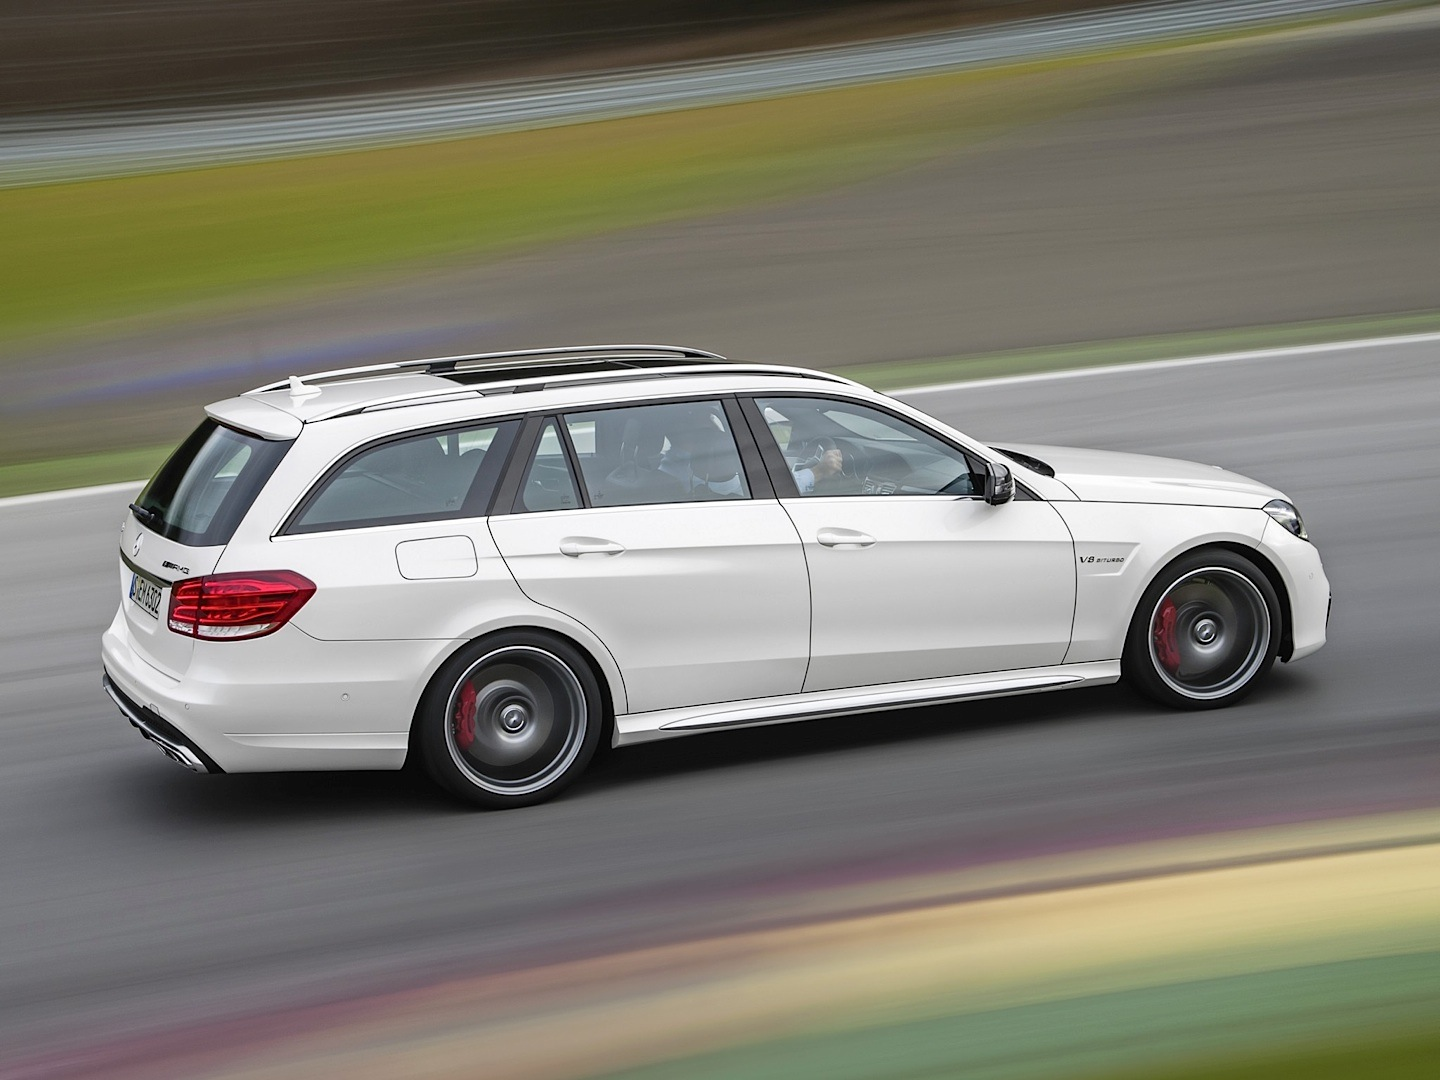 E 63 amg s model wagon gets tested by edmund 39 s autoevolution for Mercedes benz e wagon